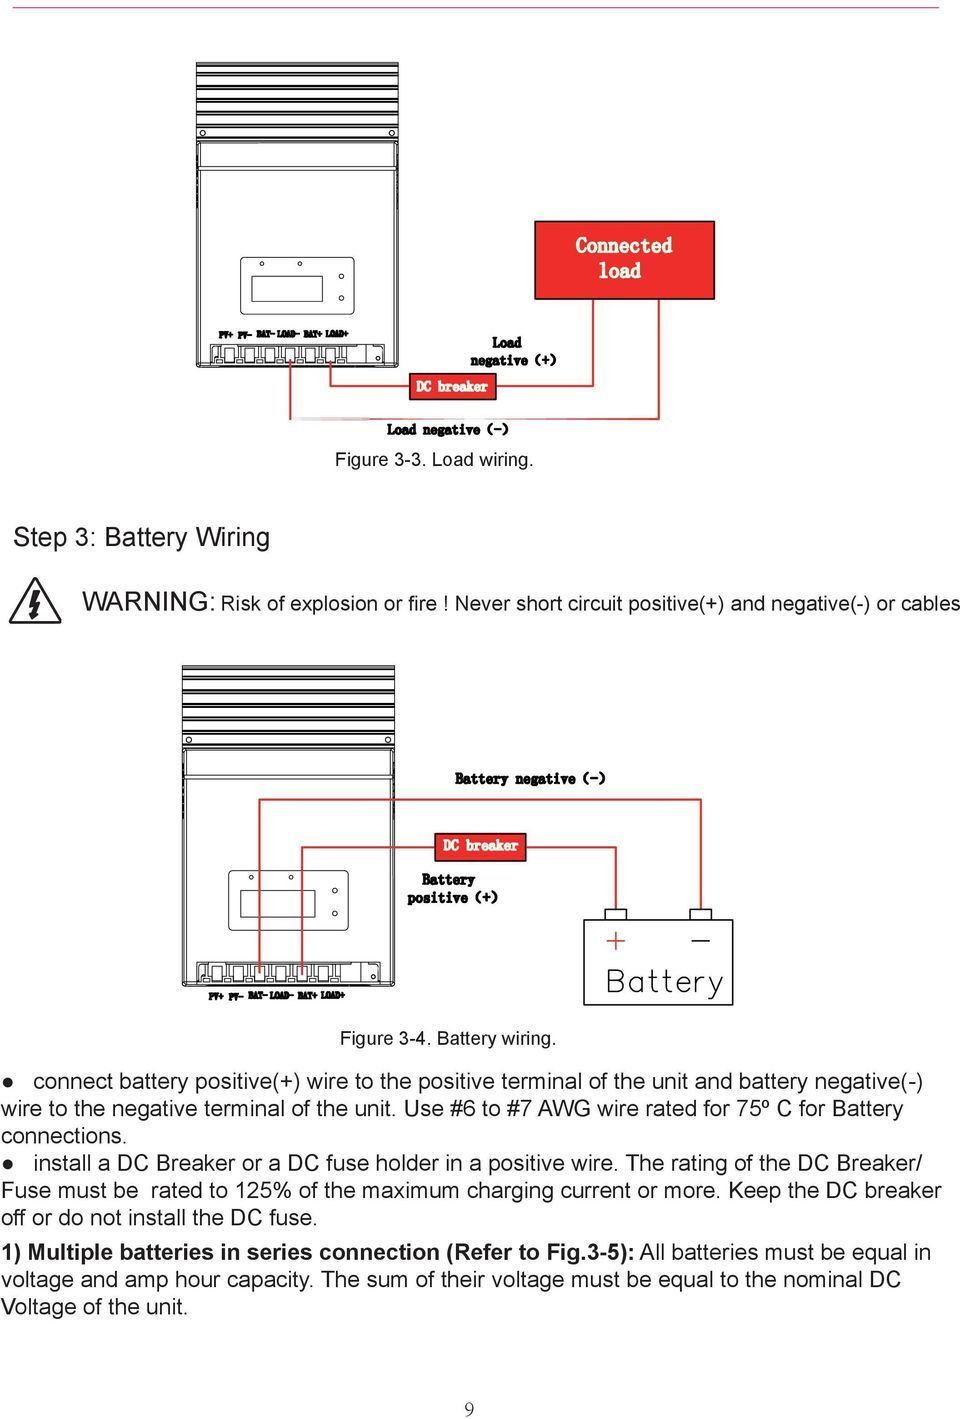 Use #6 to #7 AWG wire rated for 75º C for Battery connections. install a DC Breaker or a DC fuse holder in a positive wire.